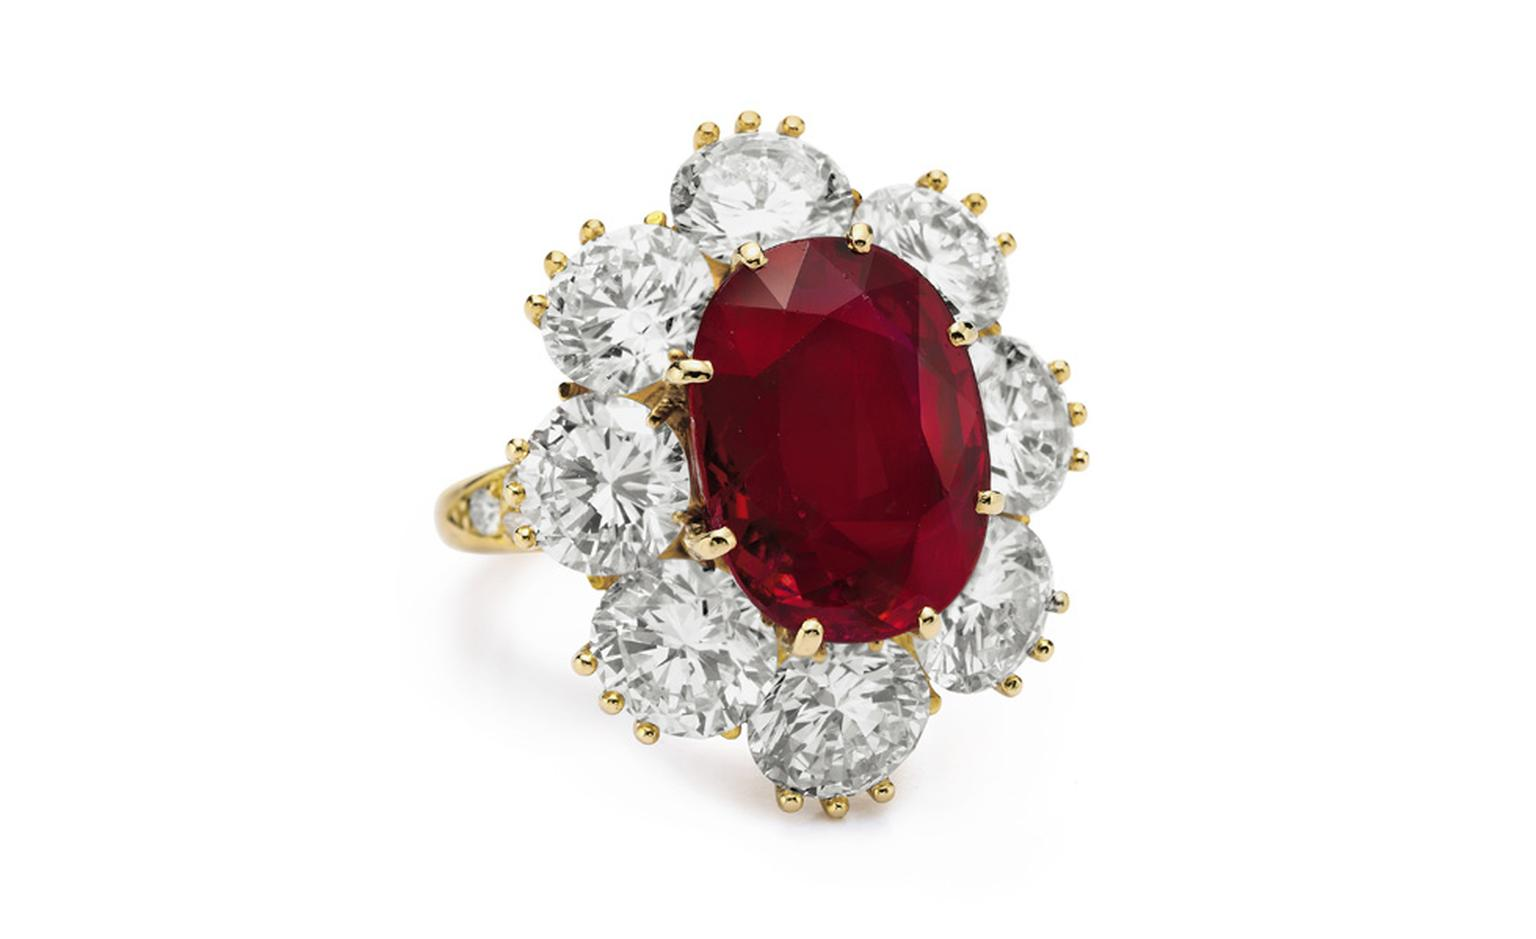 A Ruby and Diamond Ring, of 8.24 carats By Van Cleef & Arpels Gift from Richard Burton, Christmas 1968 Estimate: $1,000,000 – 1,500,000. Early in their marriage, Richard Burton promised Elizabeth Taylor he would buy her a special ruby, with perf...